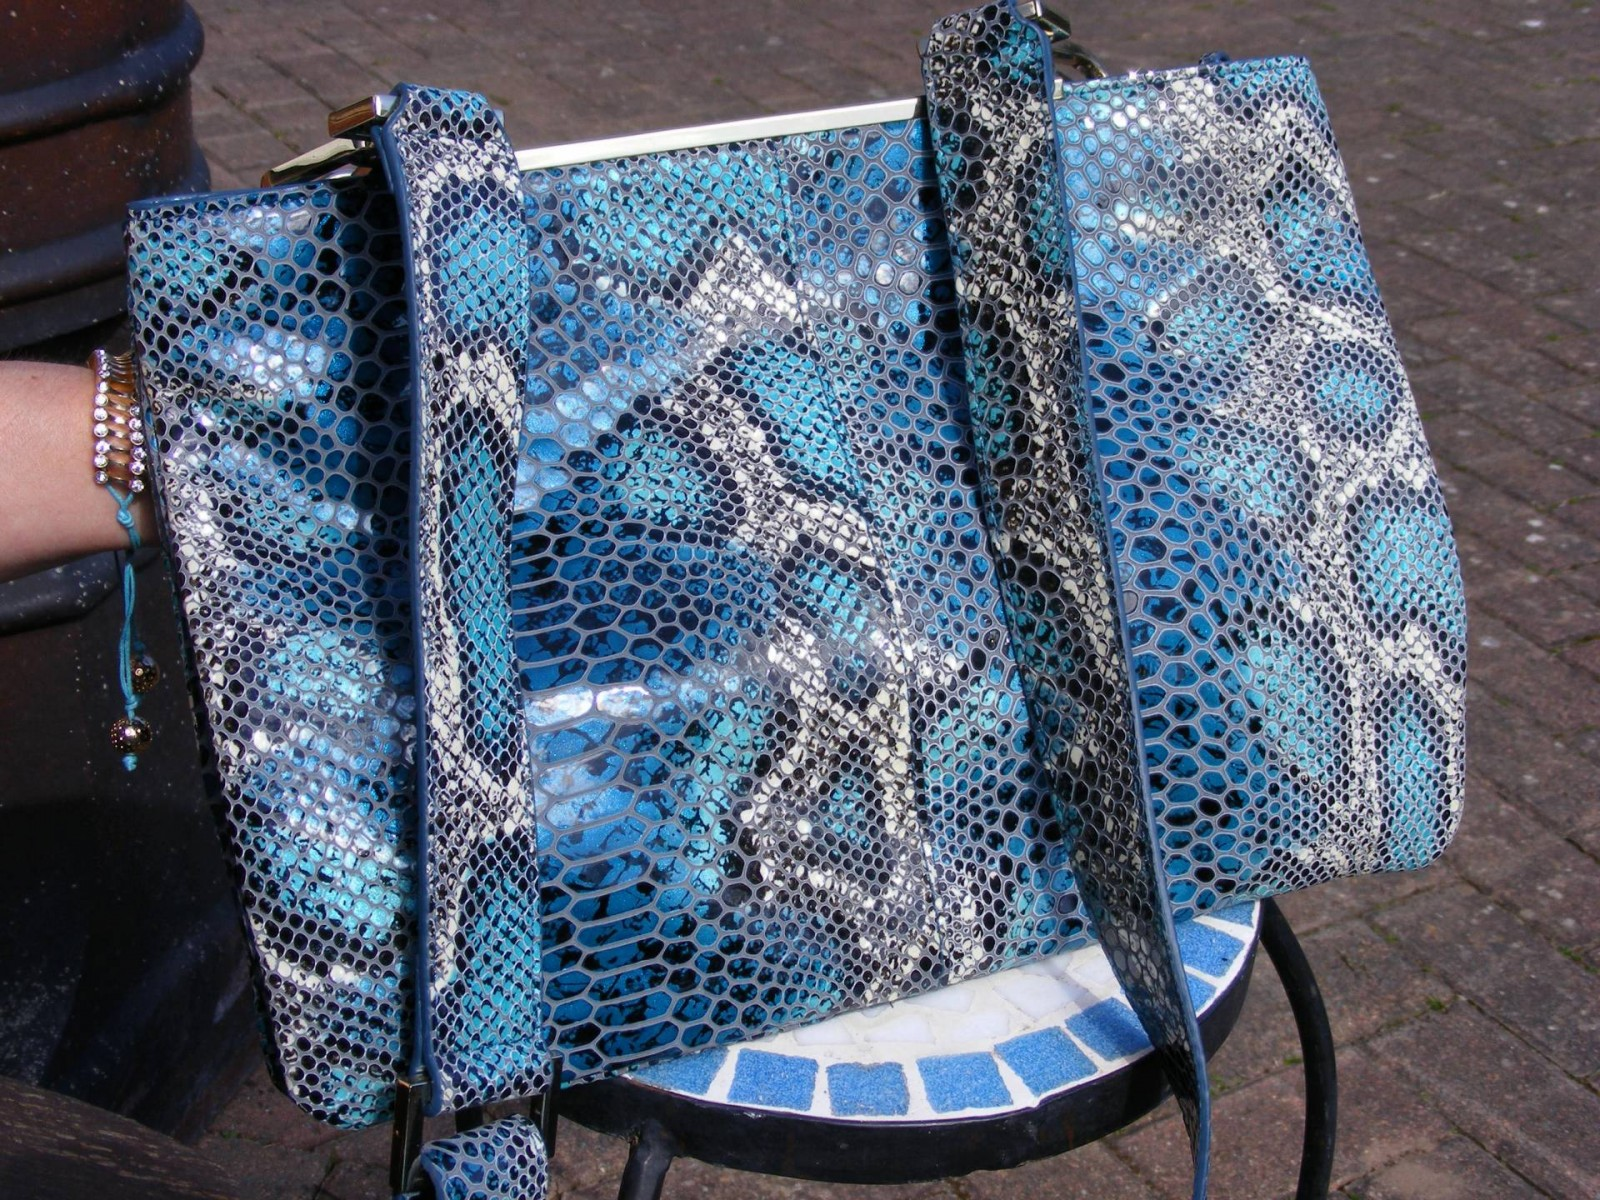 Blue snakeprint Mary Portas messenger bag